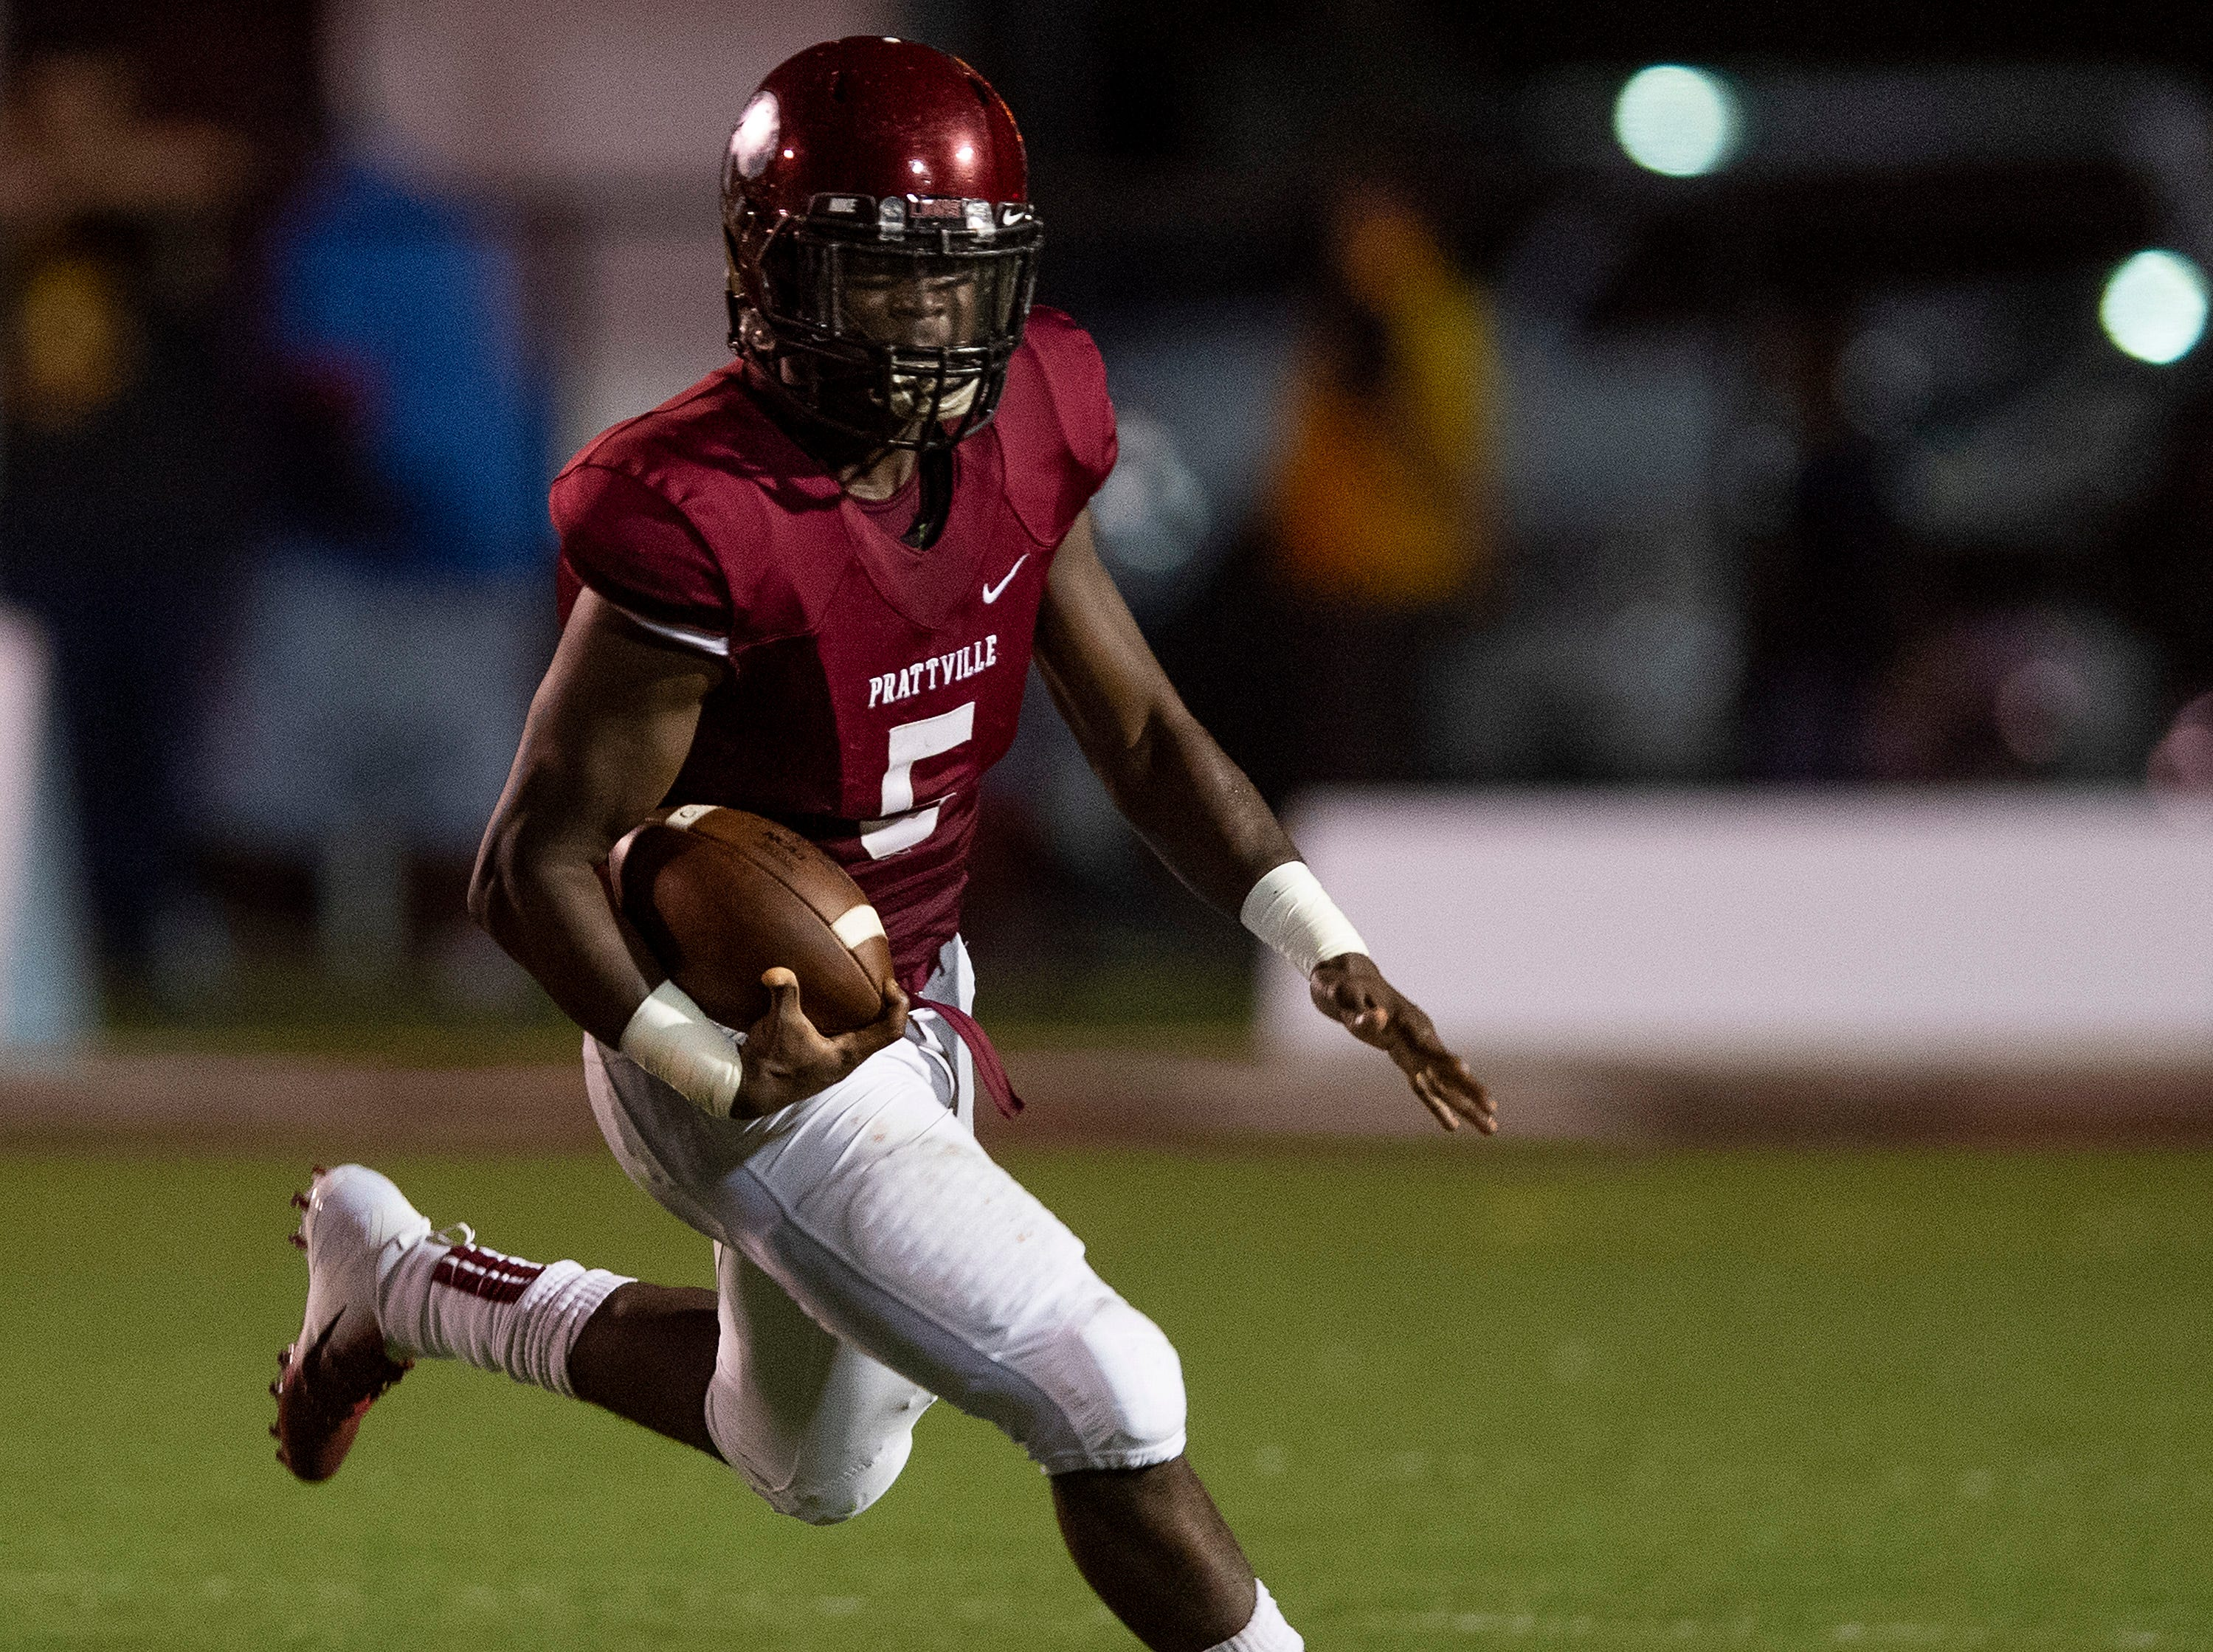 Prattville quarterback Traair Edwards carries against Foley at Stanley-Jensen Stadium in Prattville, Ala., on Friday August 24, 2018.